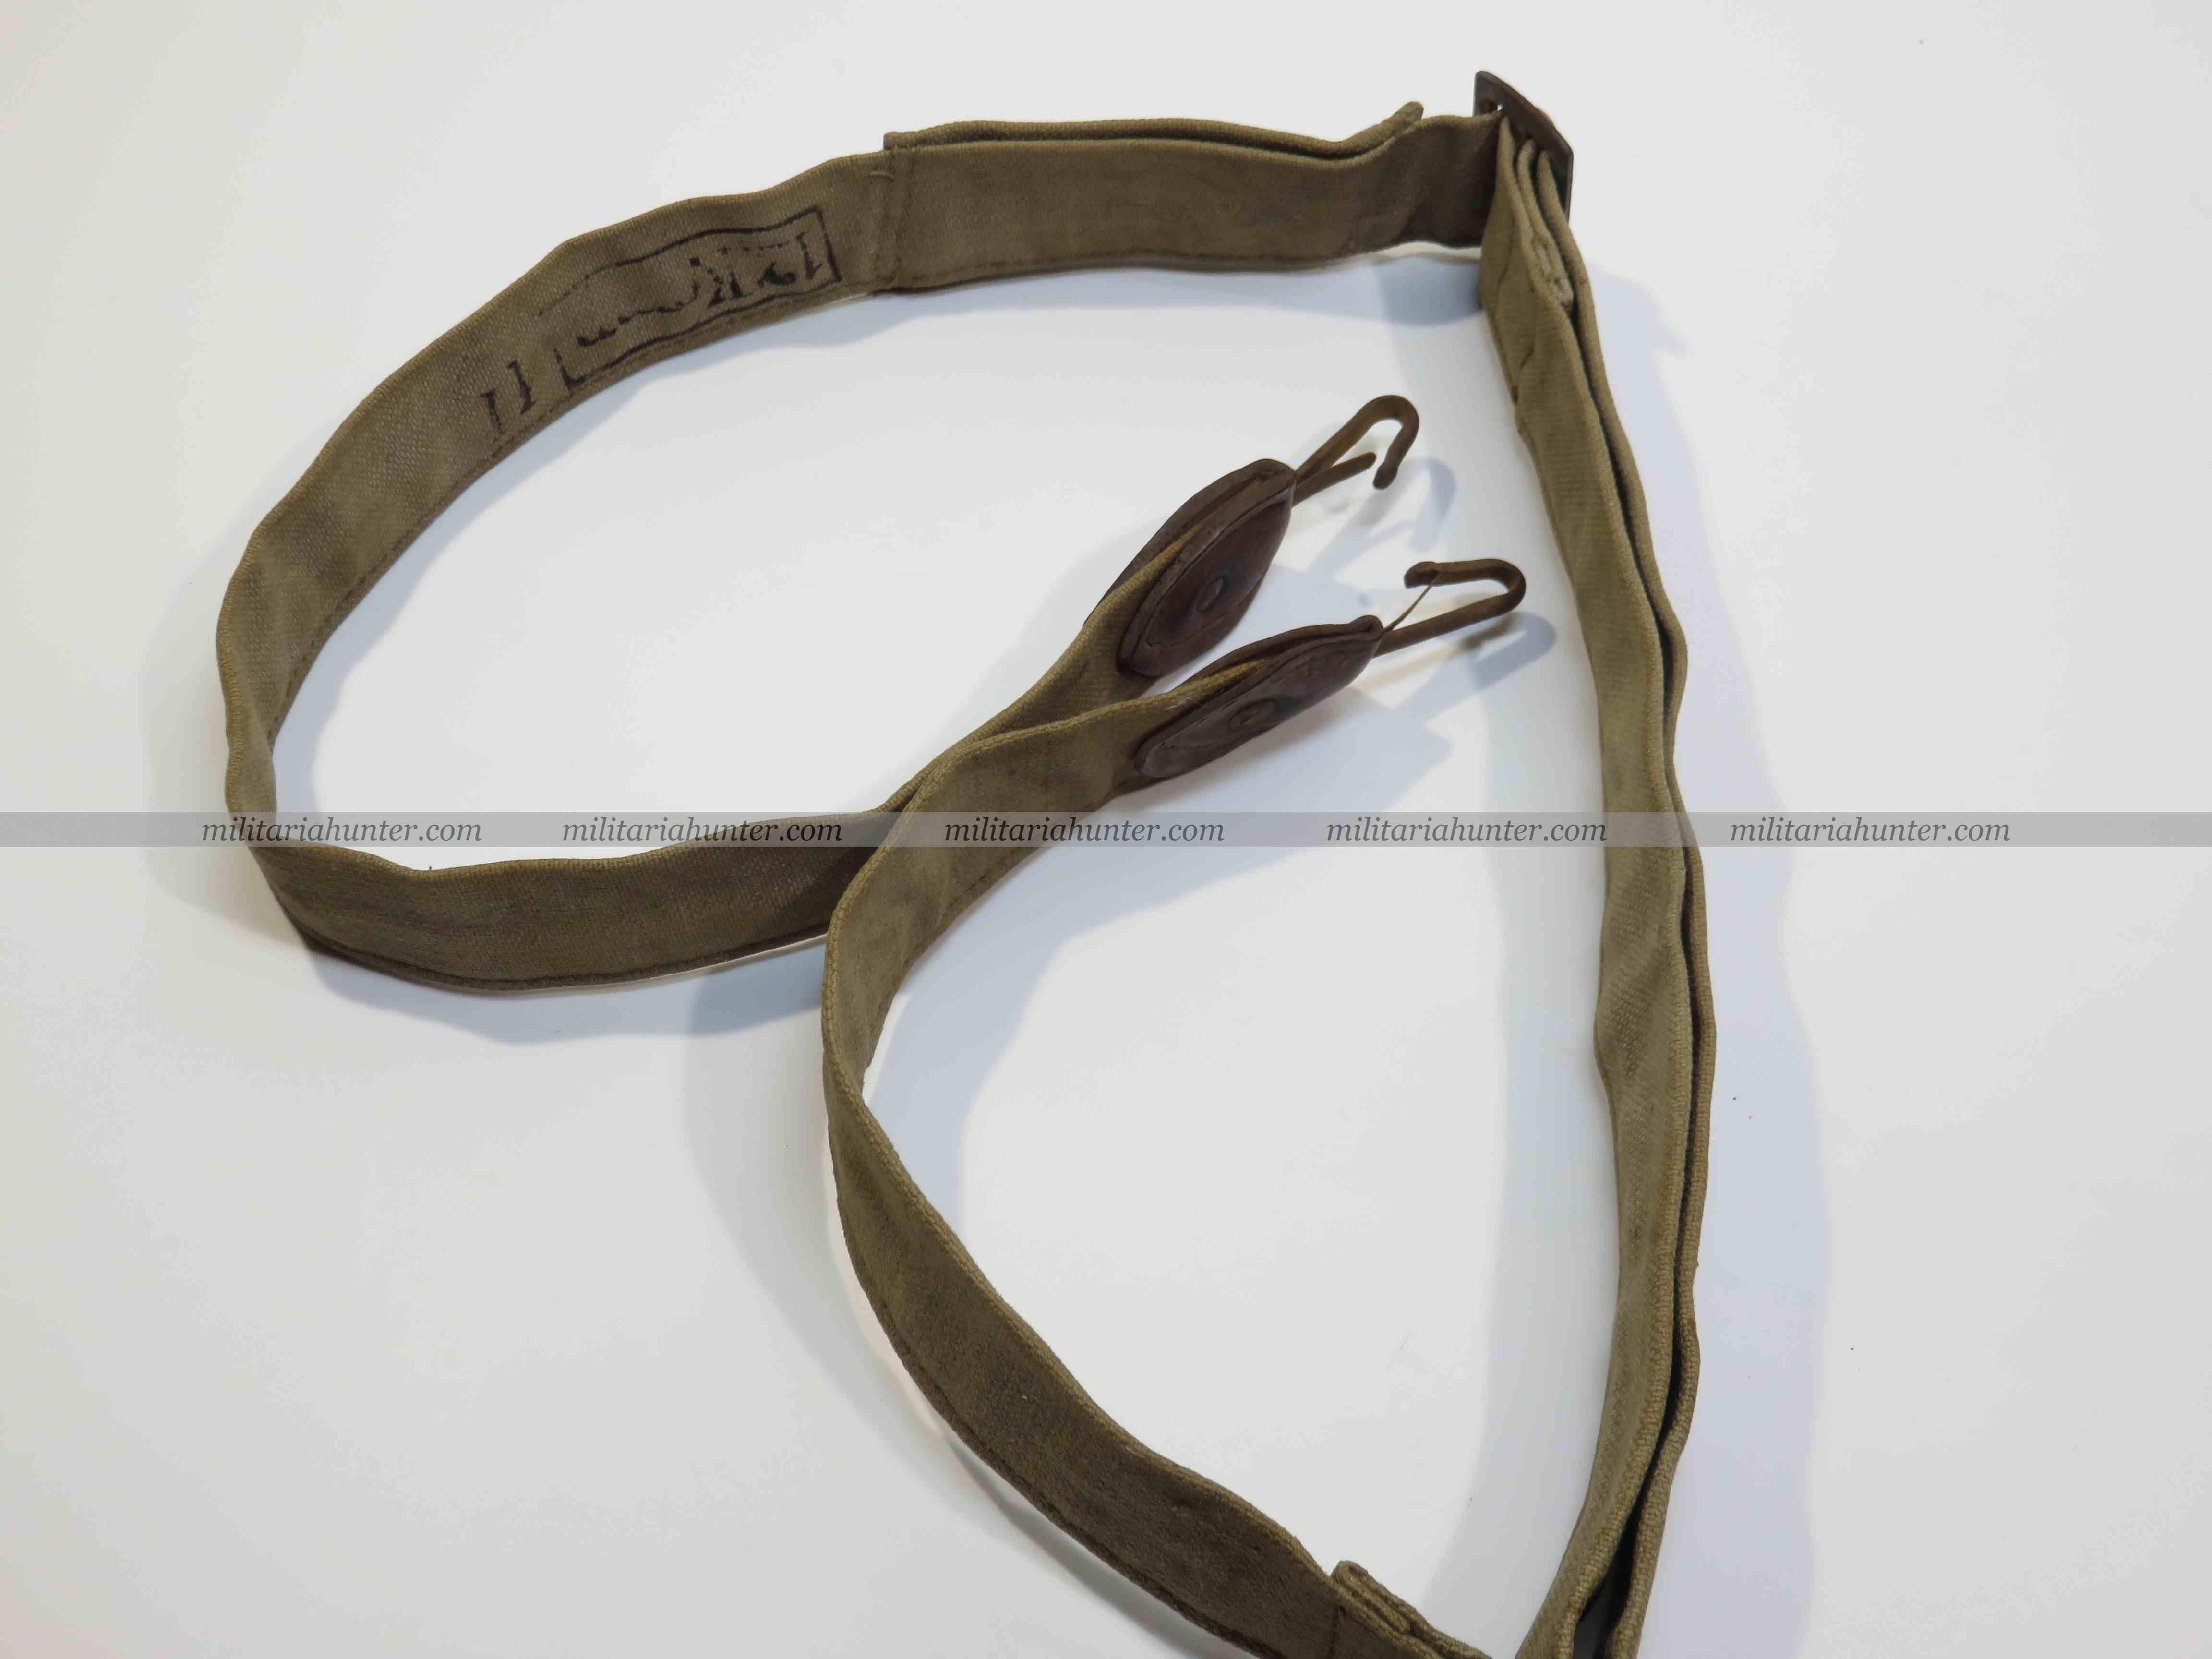 militaria : WW1 german bread bag strap - Sangle de sac à Pain - Brotbeutel Riemen